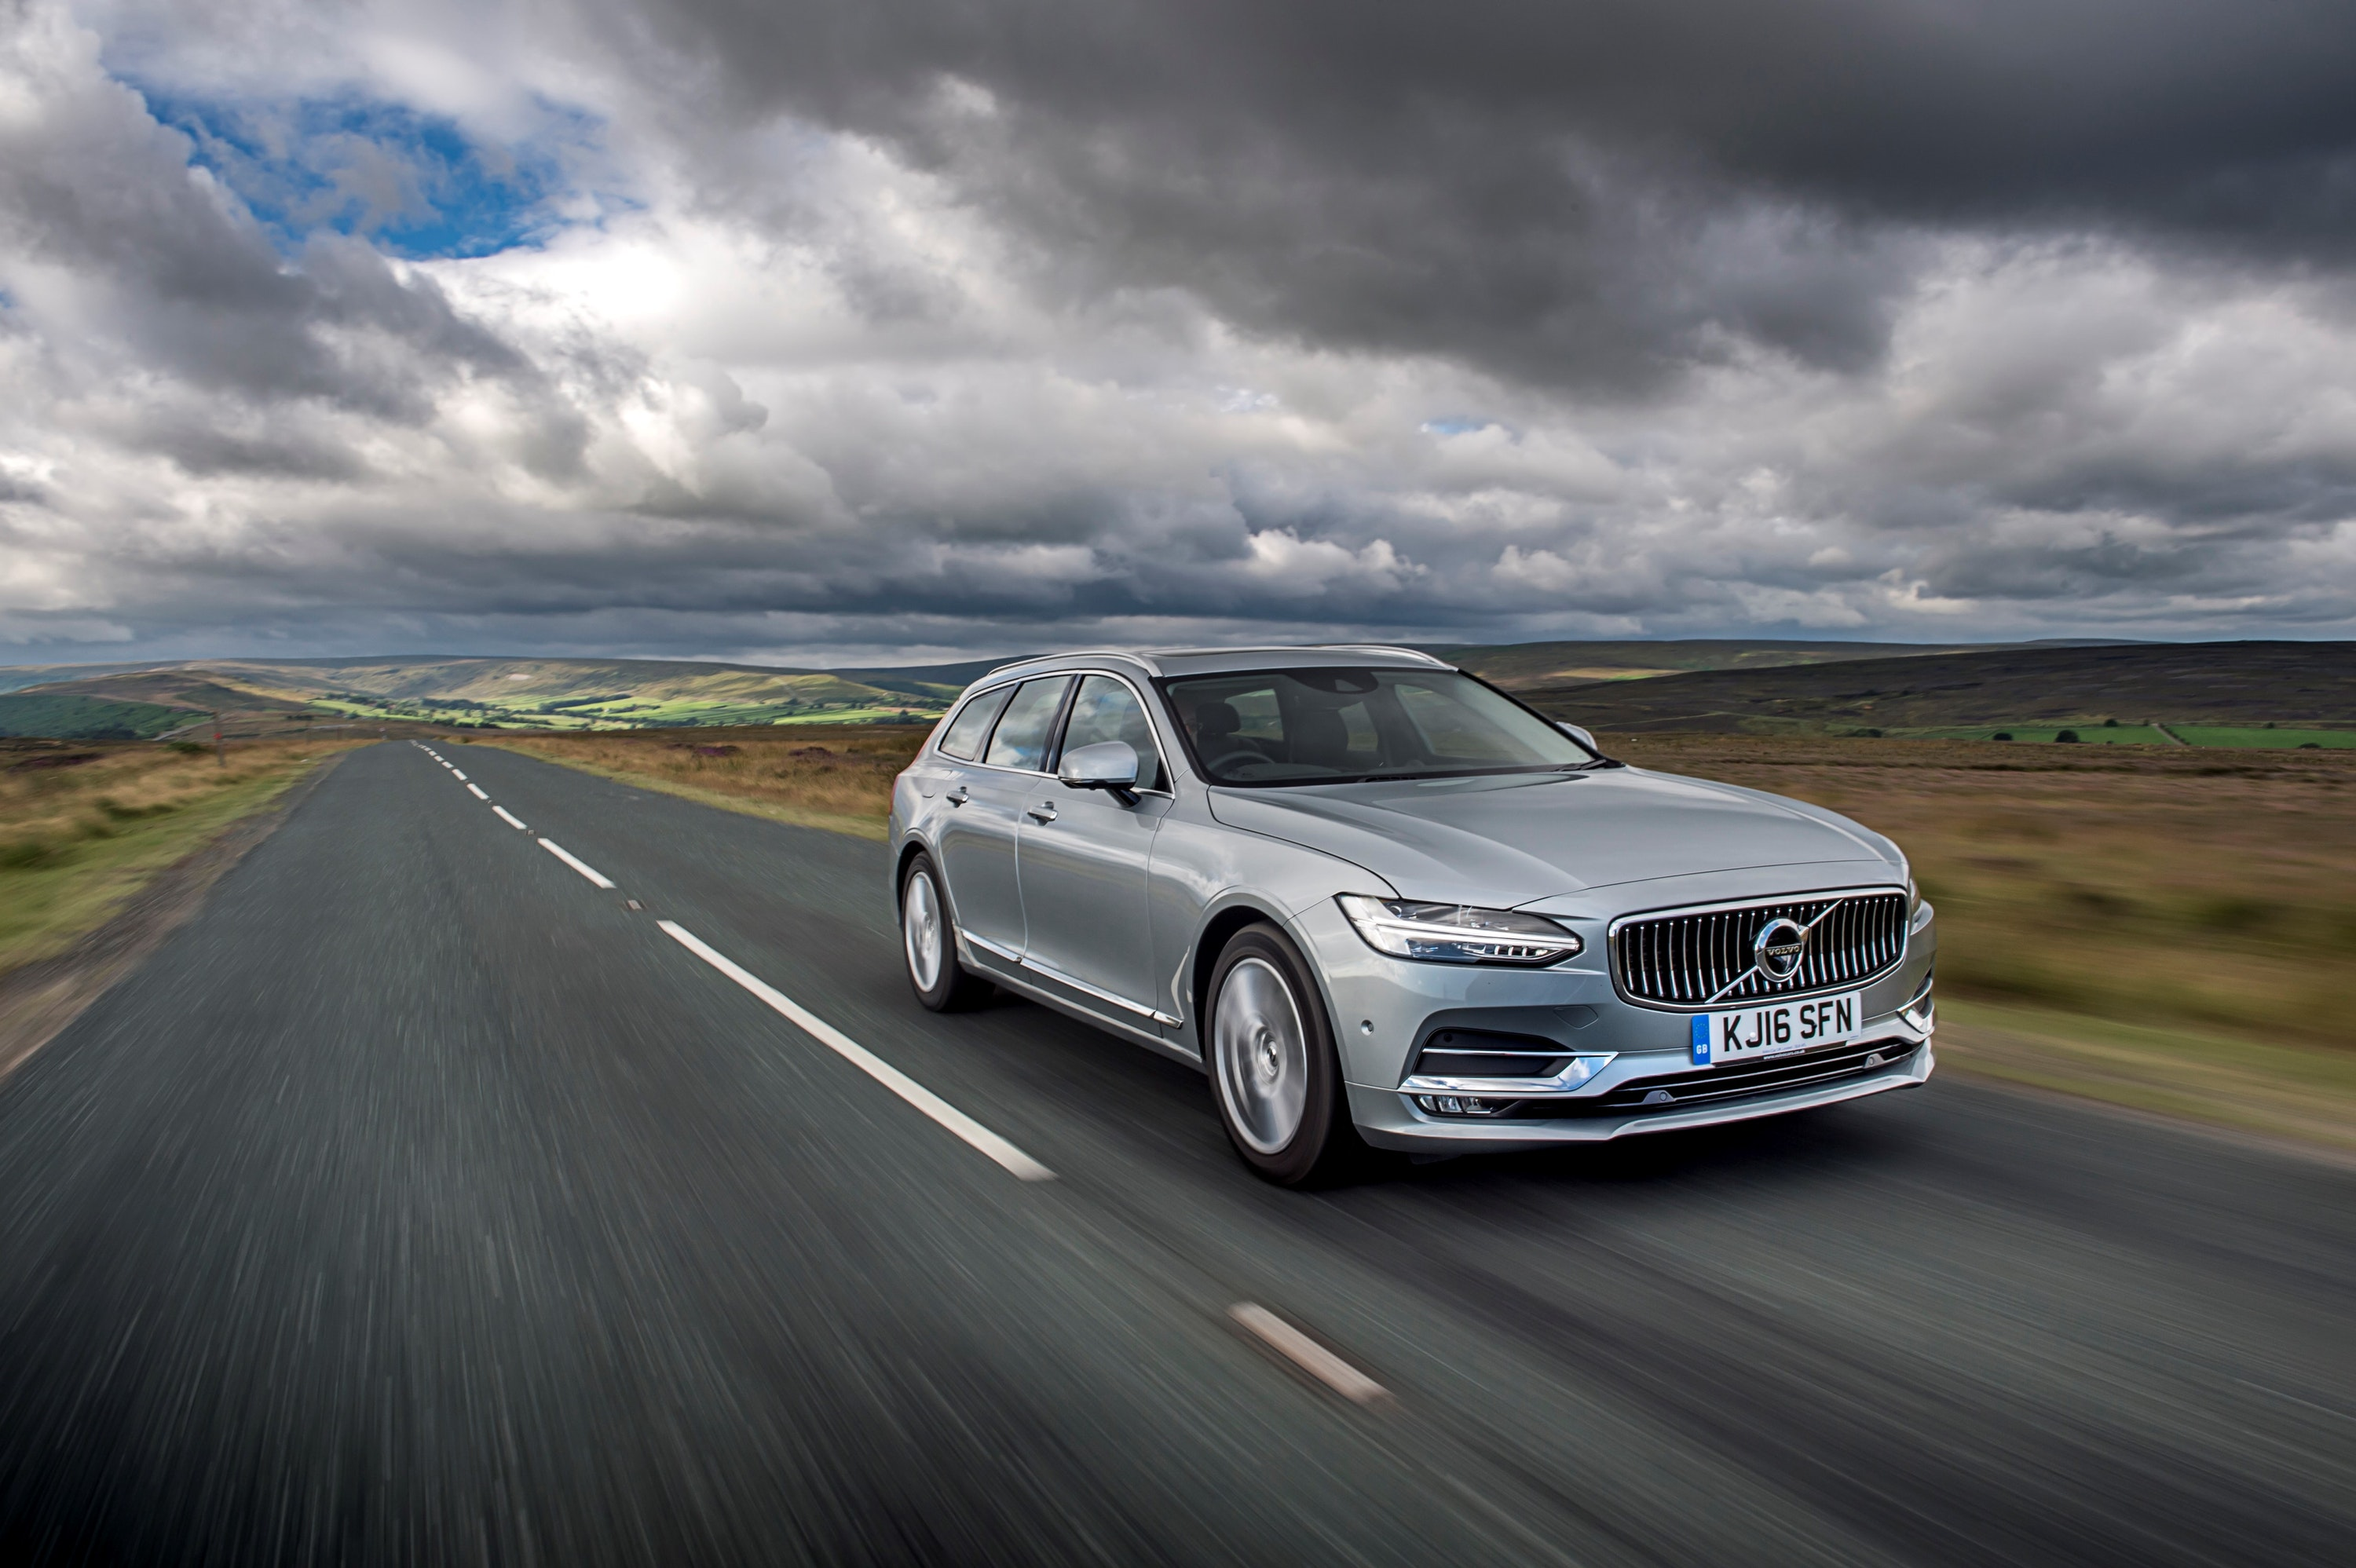 Silver Volvo V90 driving on a road